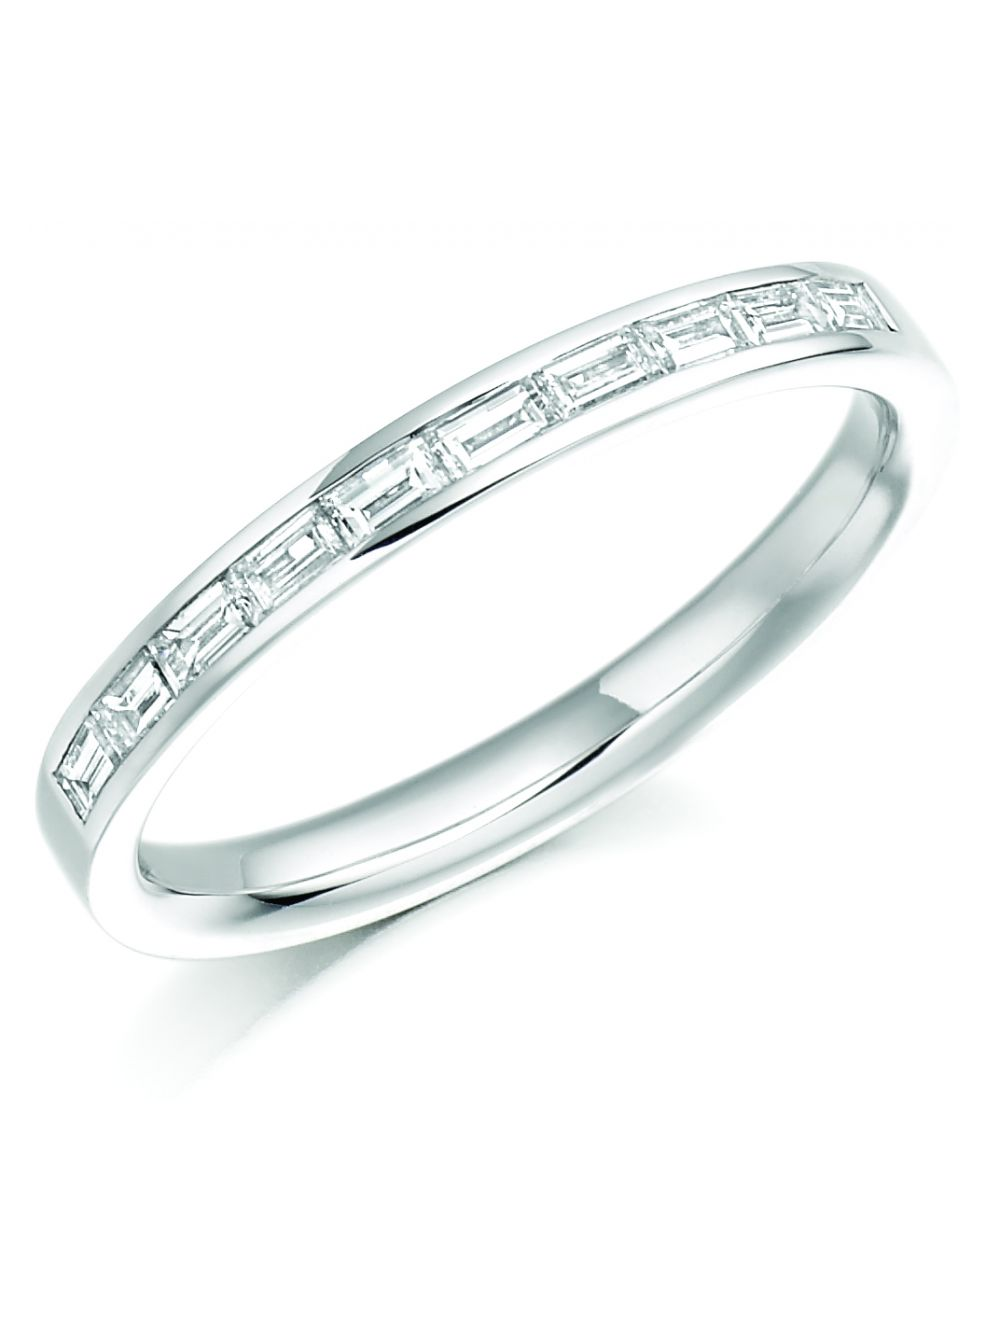 Baguette Wedding Band.18ct White Gold Diamond Baguette Wedding Band